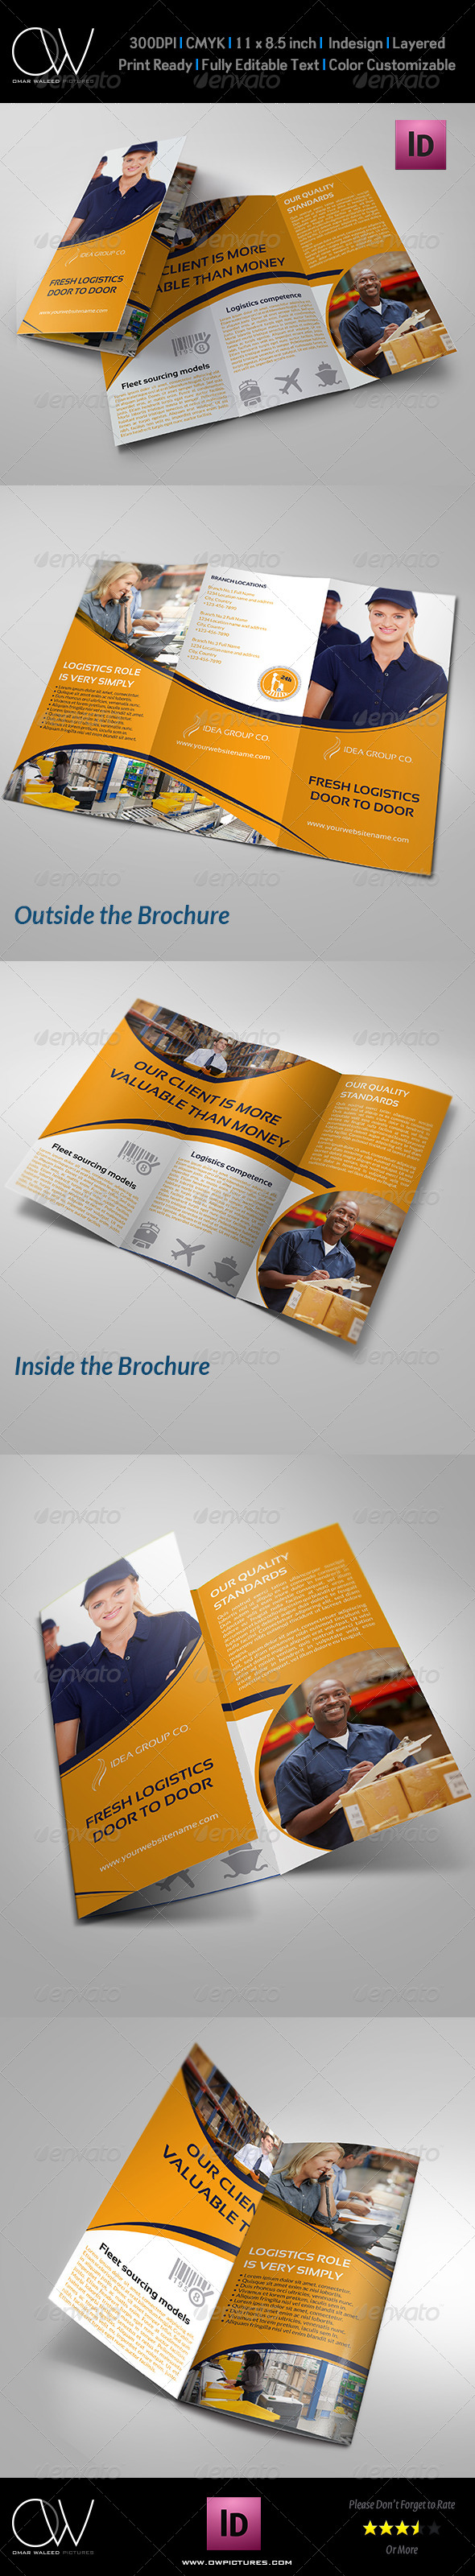 GraphicRiver Logistic Services Tri-Fold Brochure Template 7807411